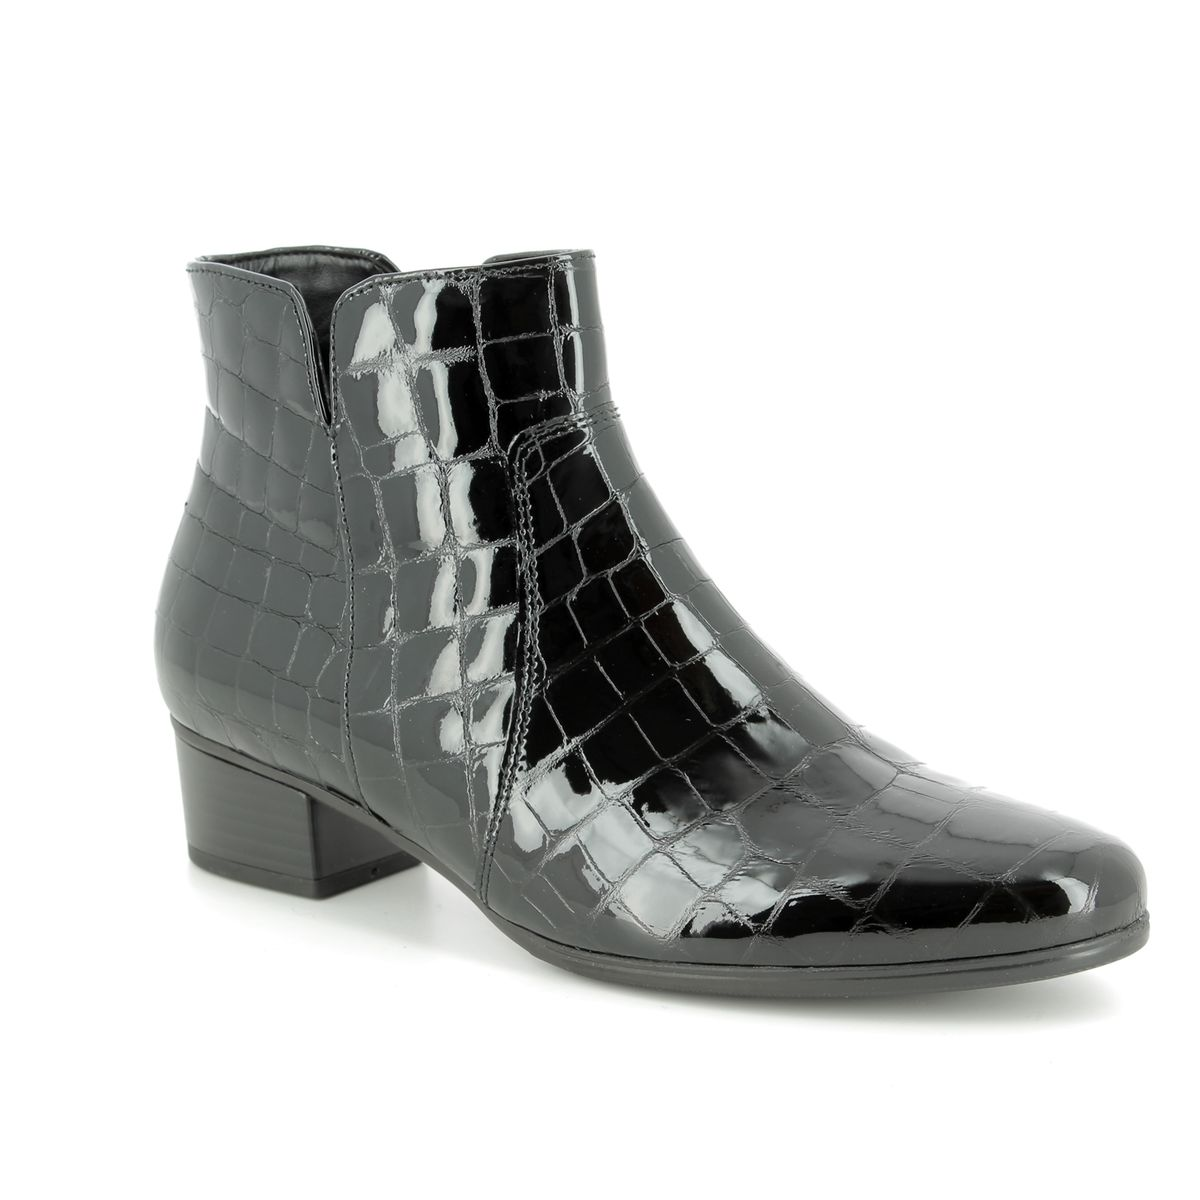 f1546f8bbfc Gabor Ankle Boots - Black croc - 95.600.97 DELAWARE